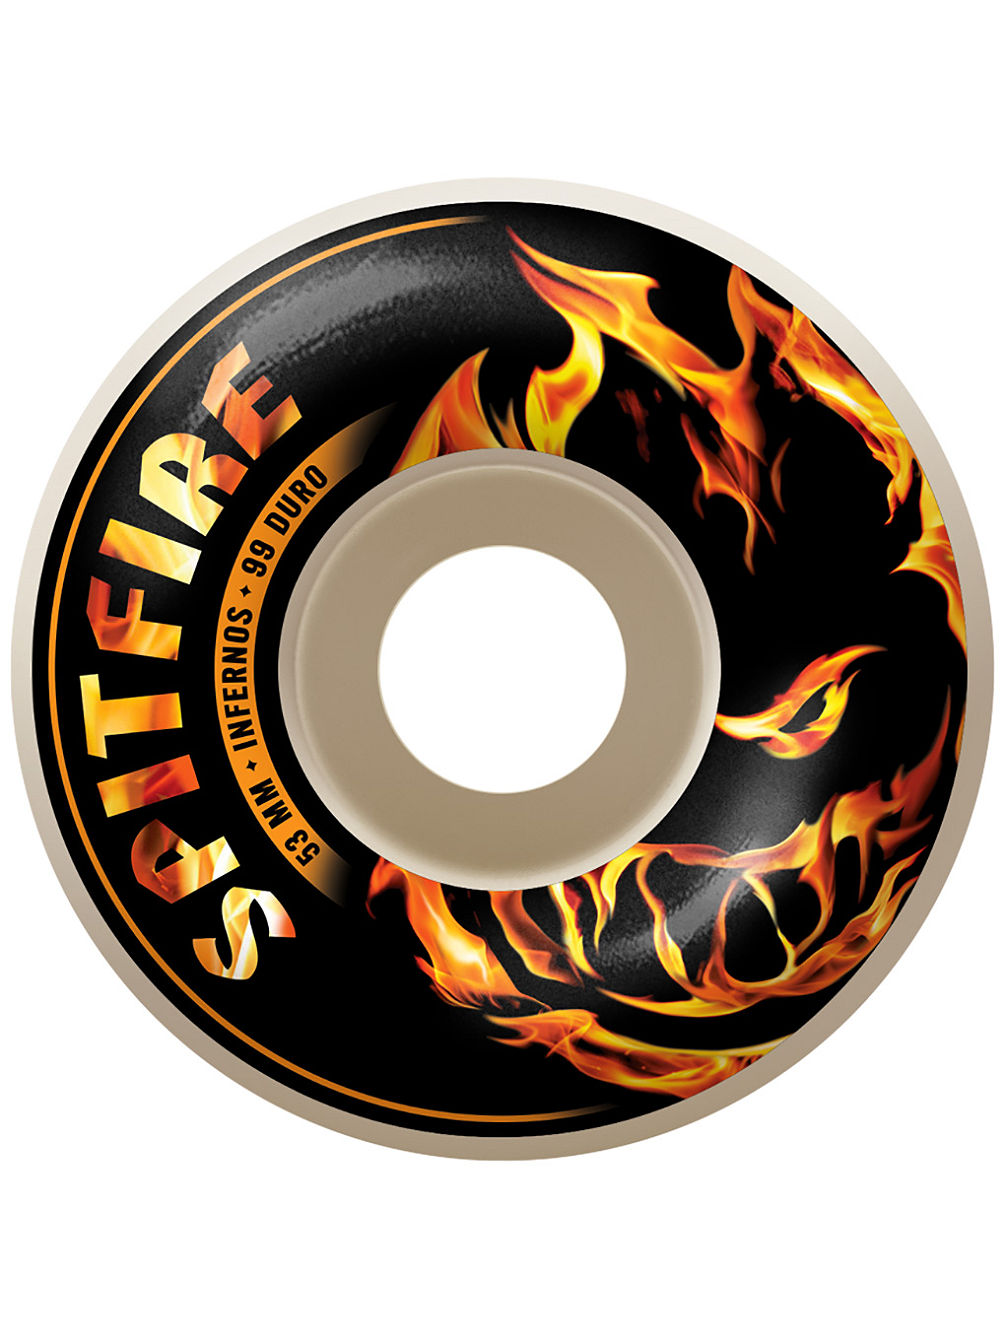 Infernos White 51mm Wheels